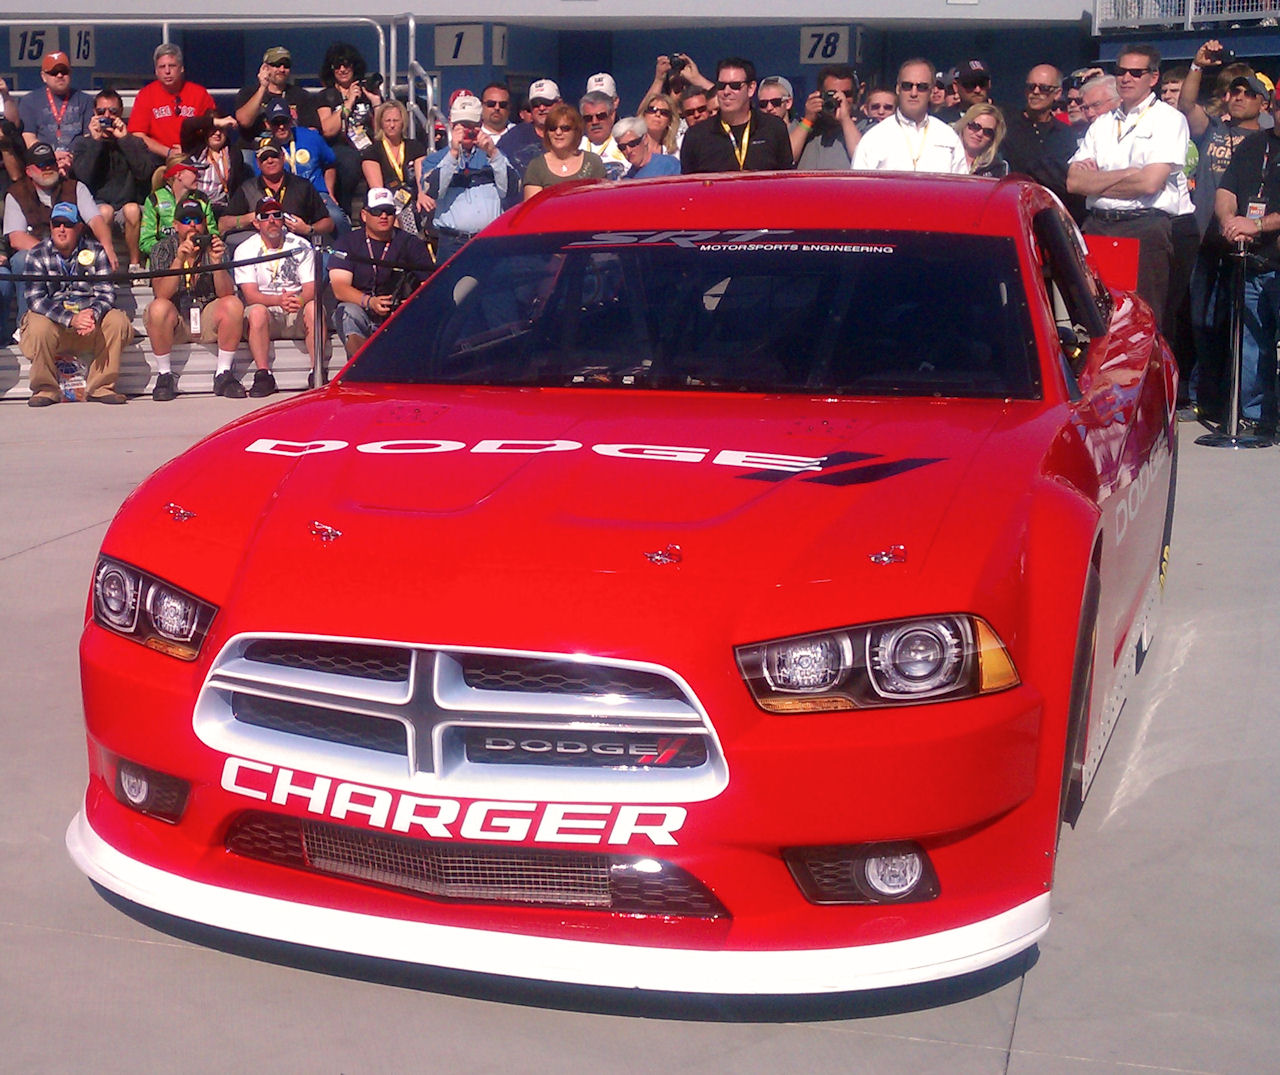 2013 nascar dodge charger sprint cup car muscle cars news and pictures. Black Bedroom Furniture Sets. Home Design Ideas